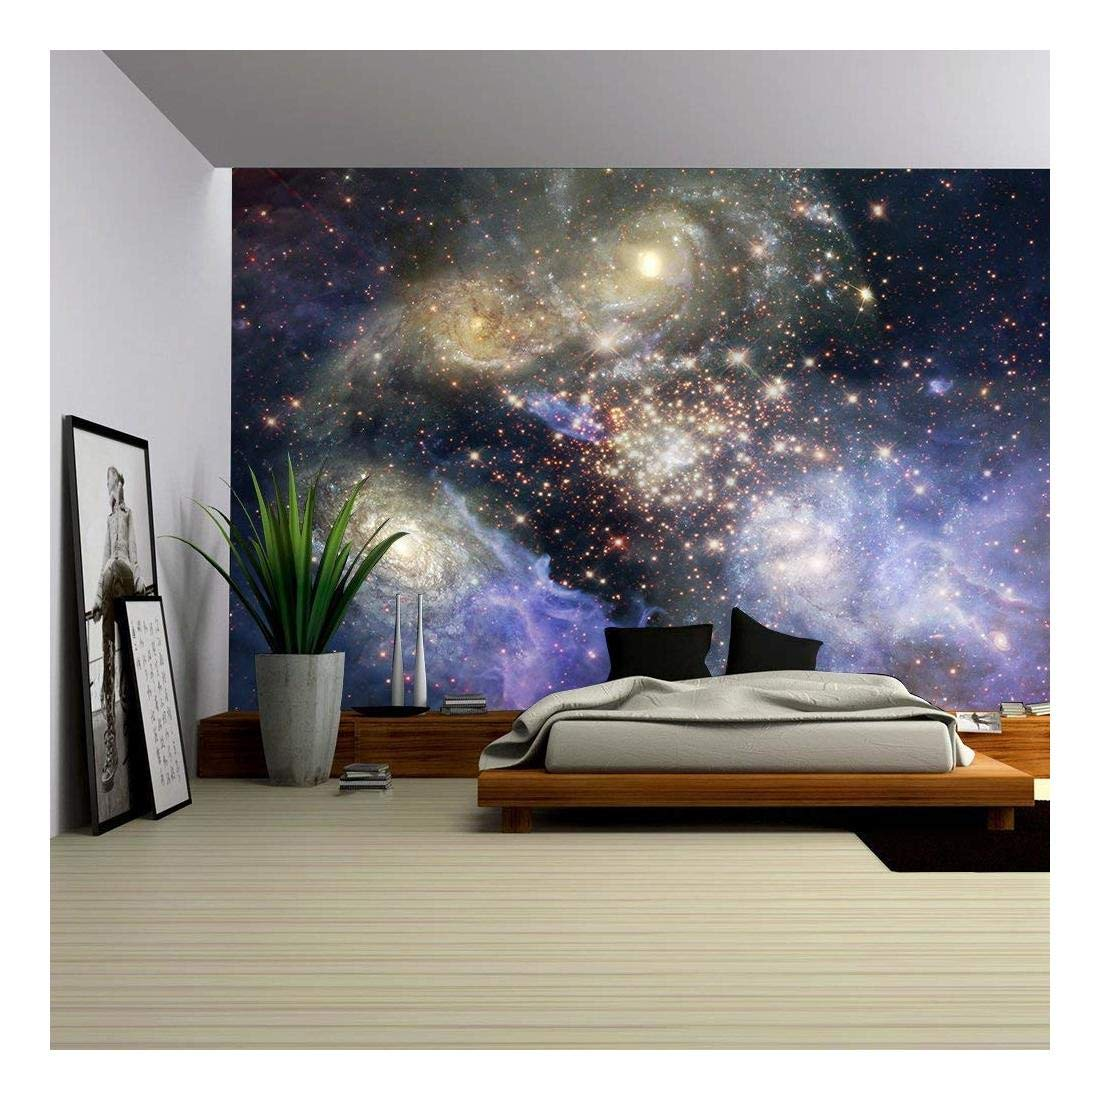 wall26 Self-Adhesive Wallpaper Large Wall Mural Series (100''x144'', Artwork - 29) by wall26 (Image #1)